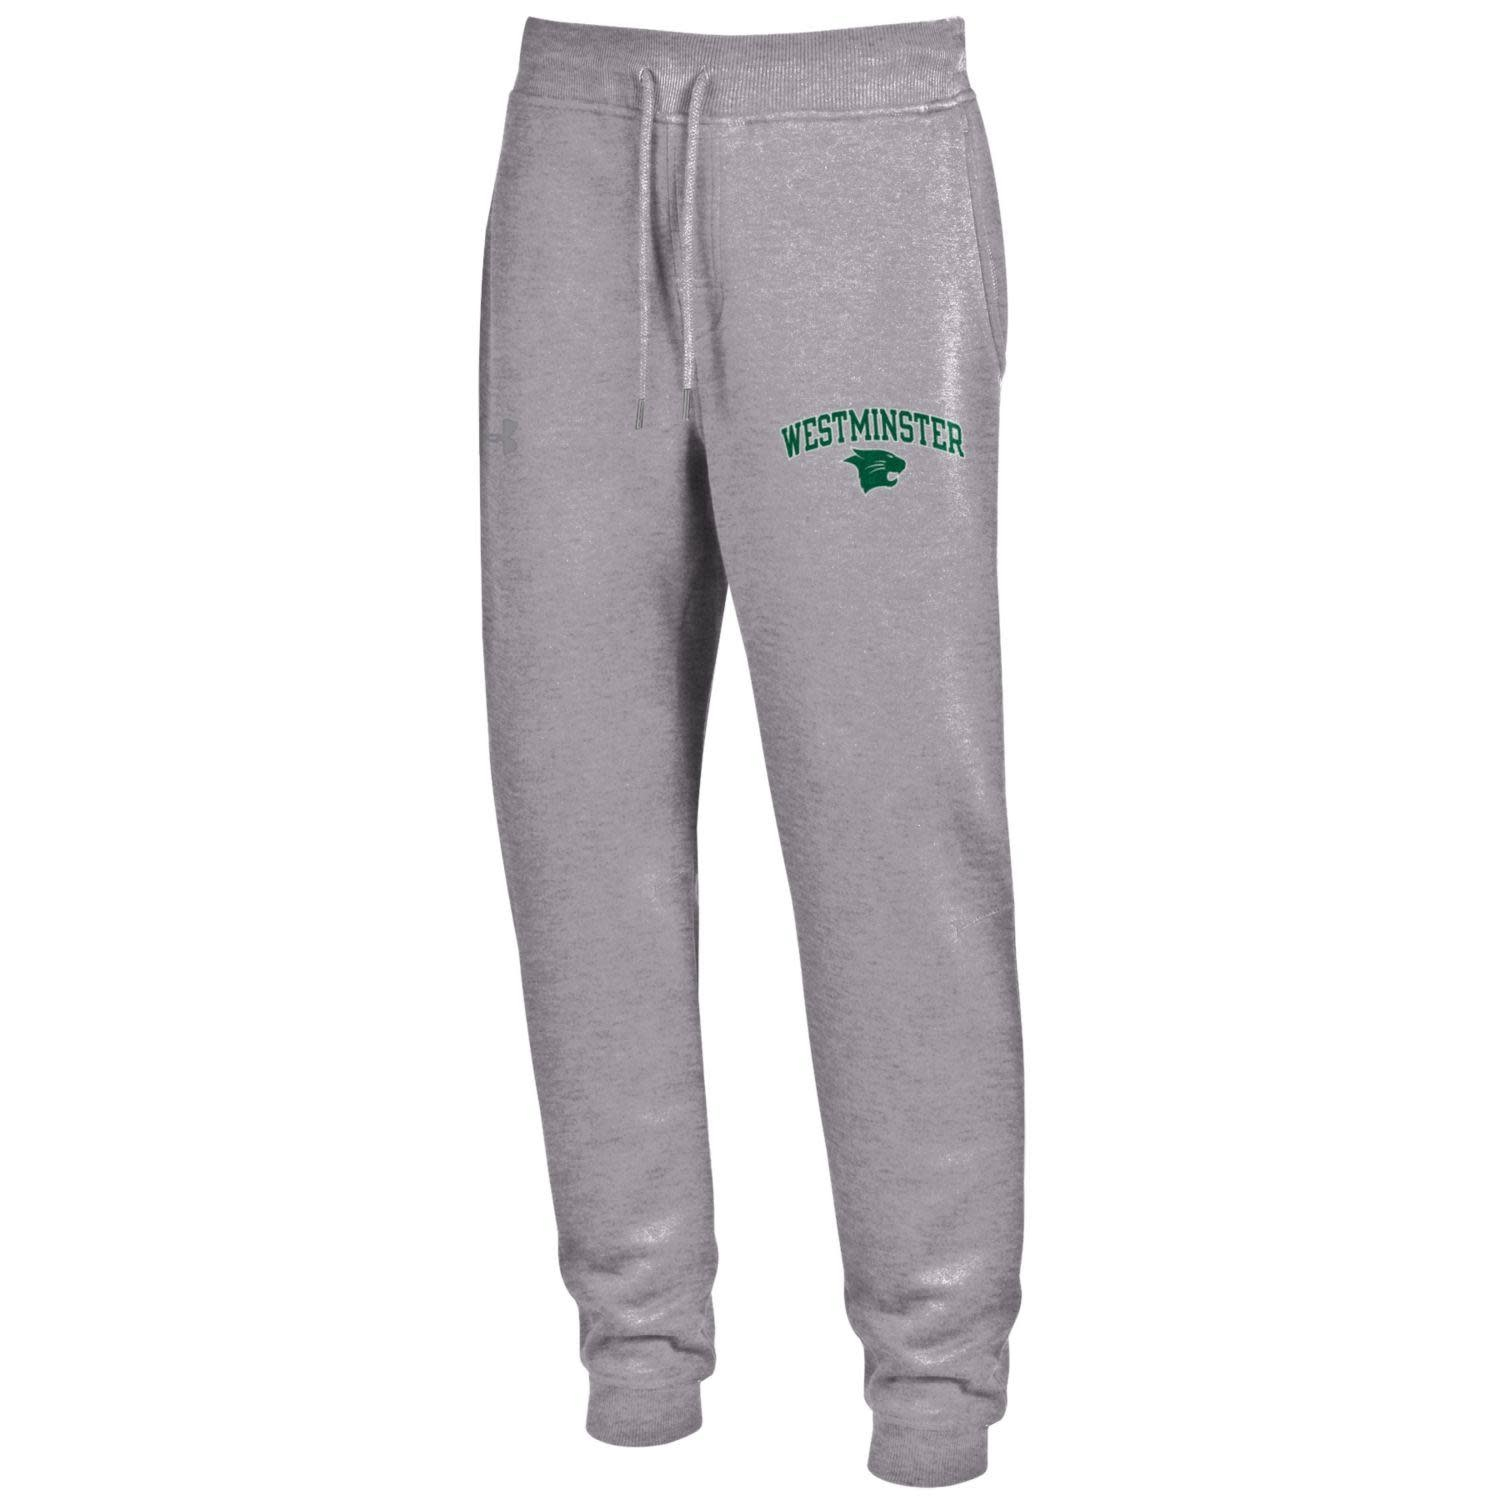 Sweatpants: UA Rival Cotton True Gray Heather - Ribbed Top and Cuff